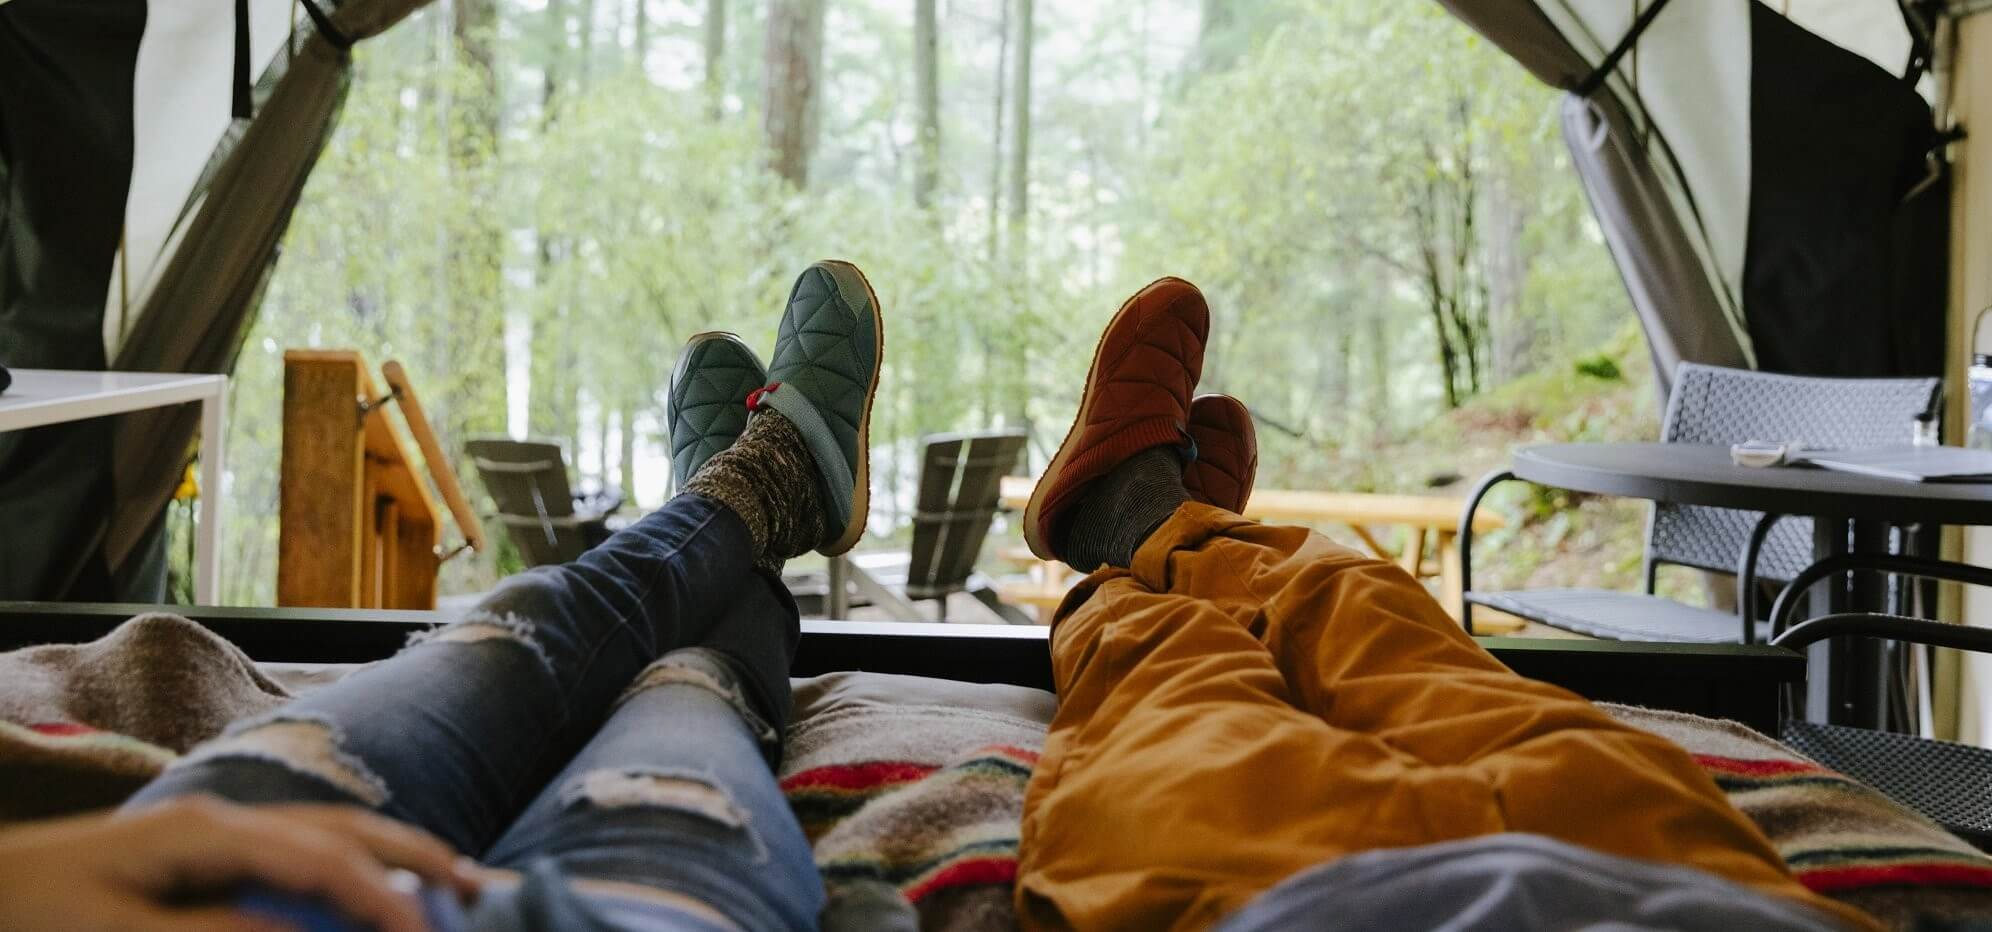 7 best camping slippers in 2020: comfy slippers to wear in and out of your tent